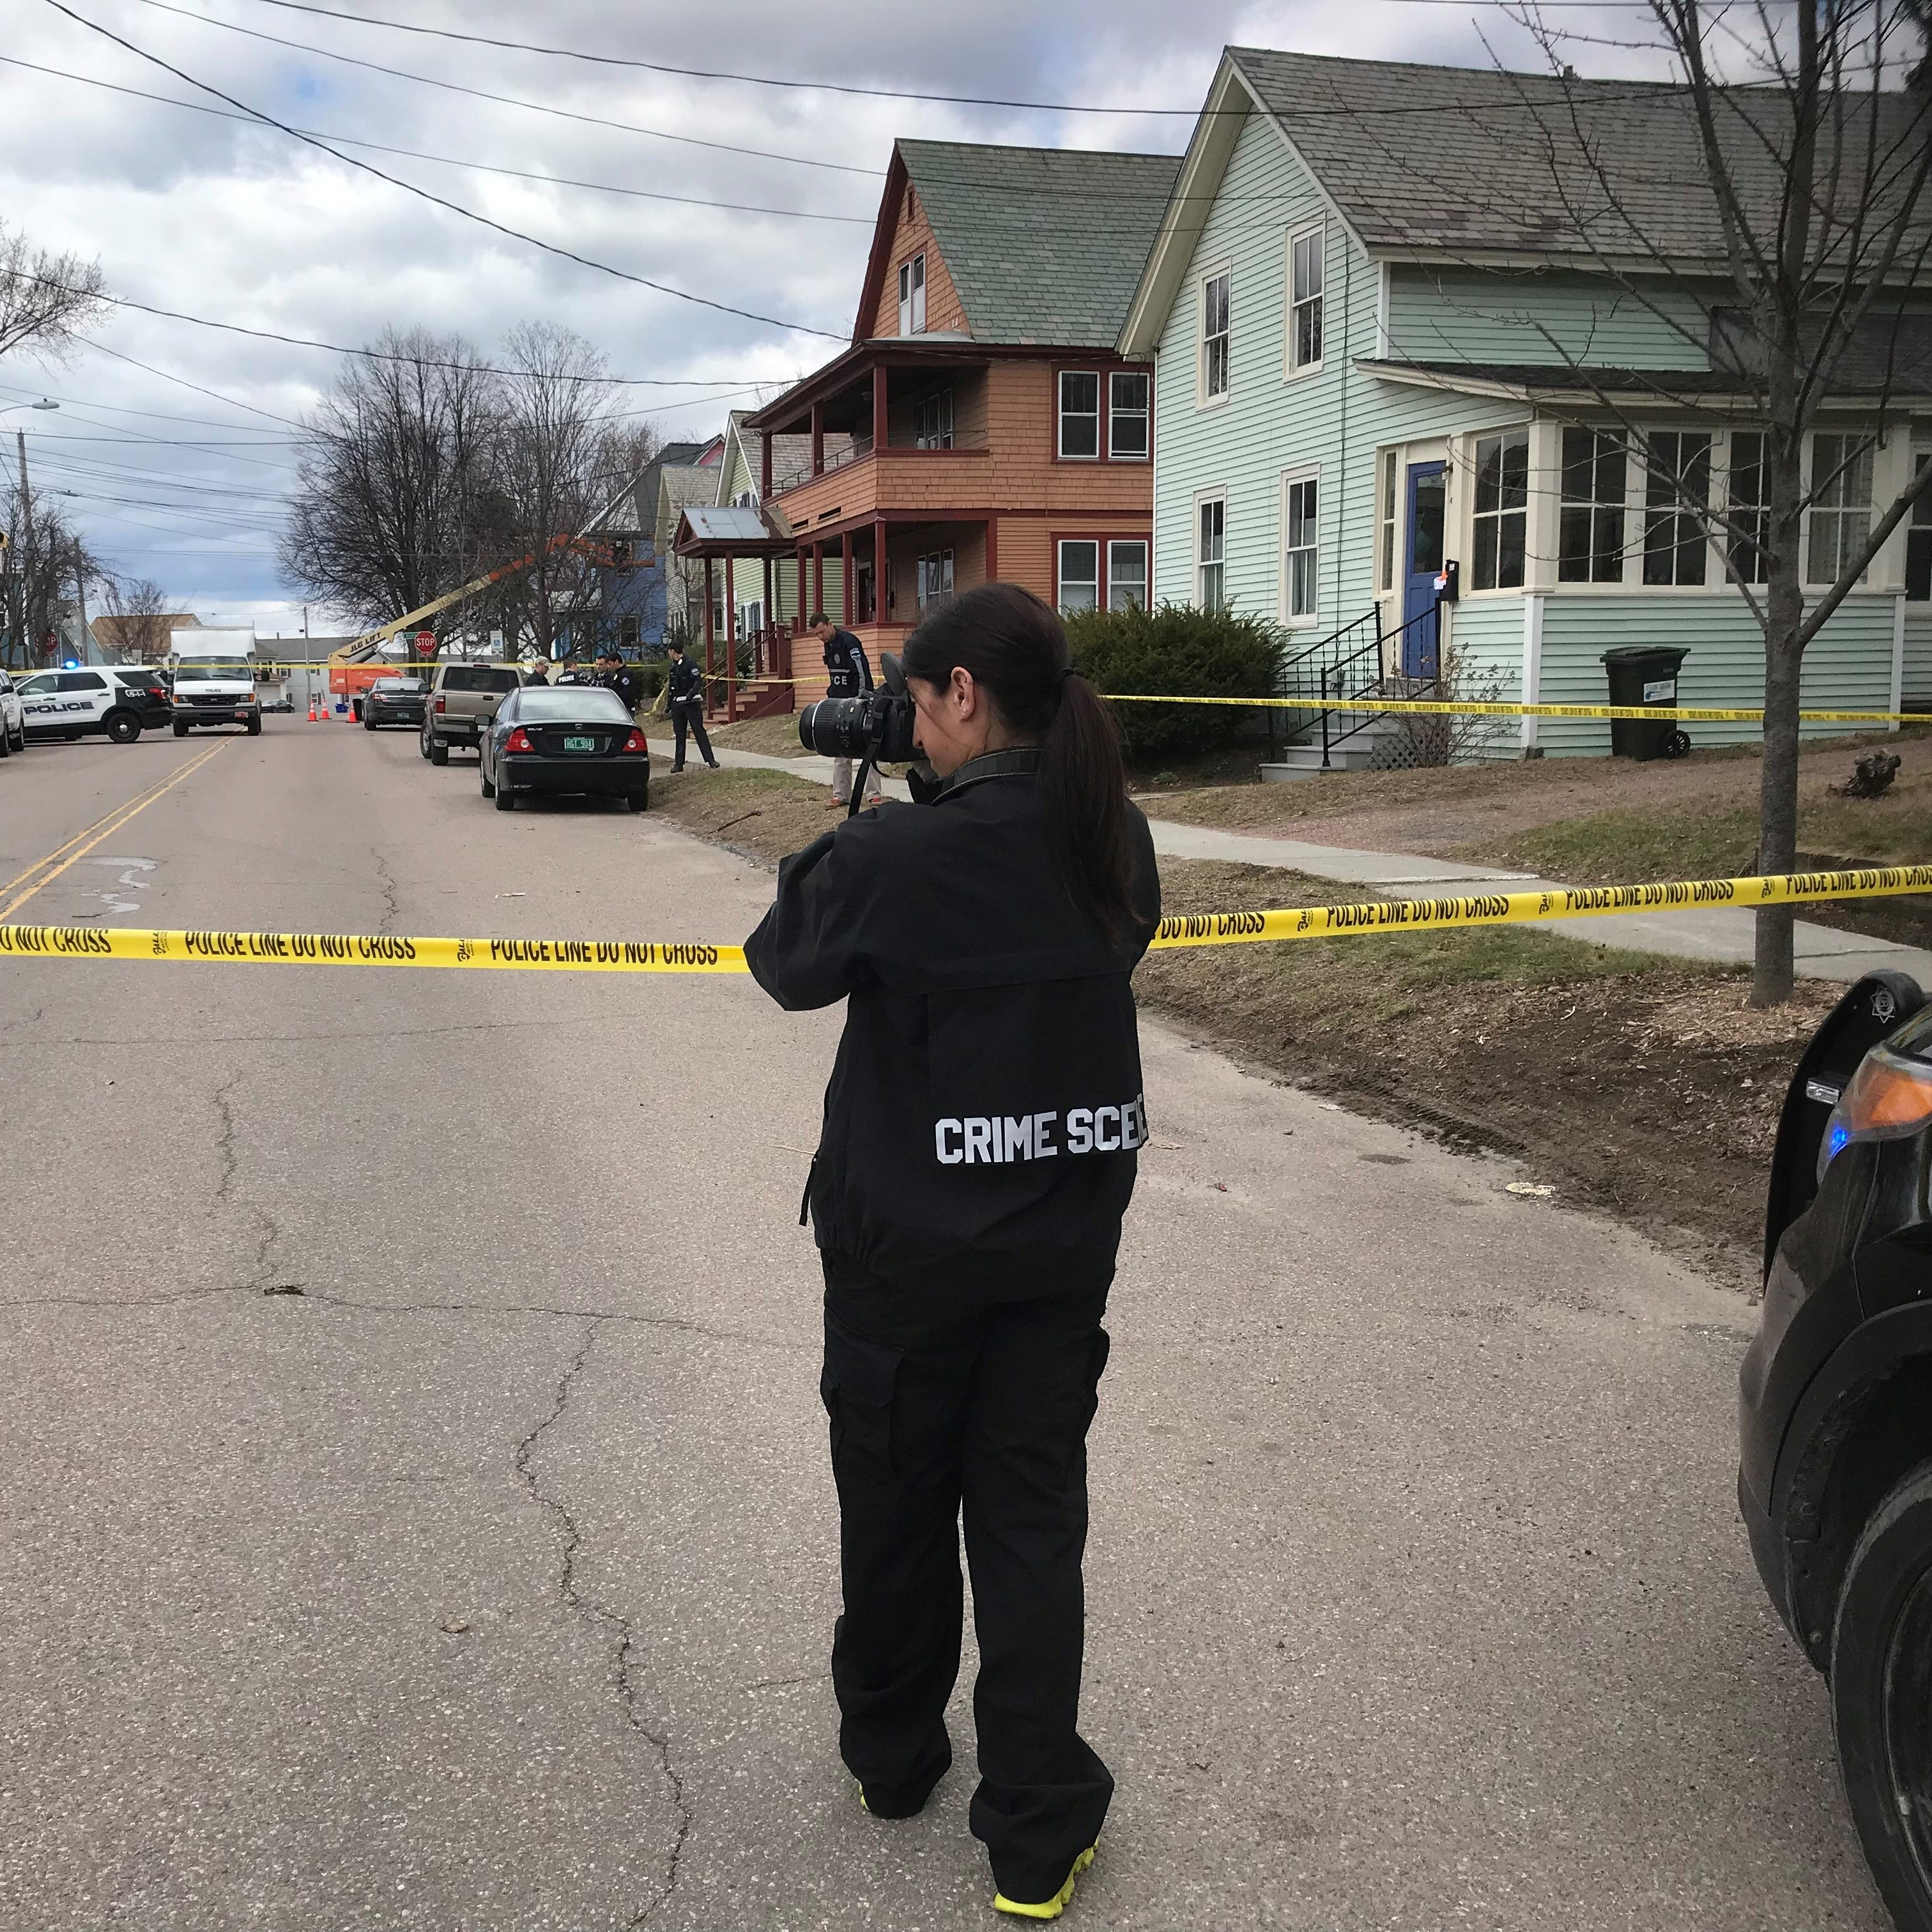 Burlington police on the scene of shooting incident in Old North End